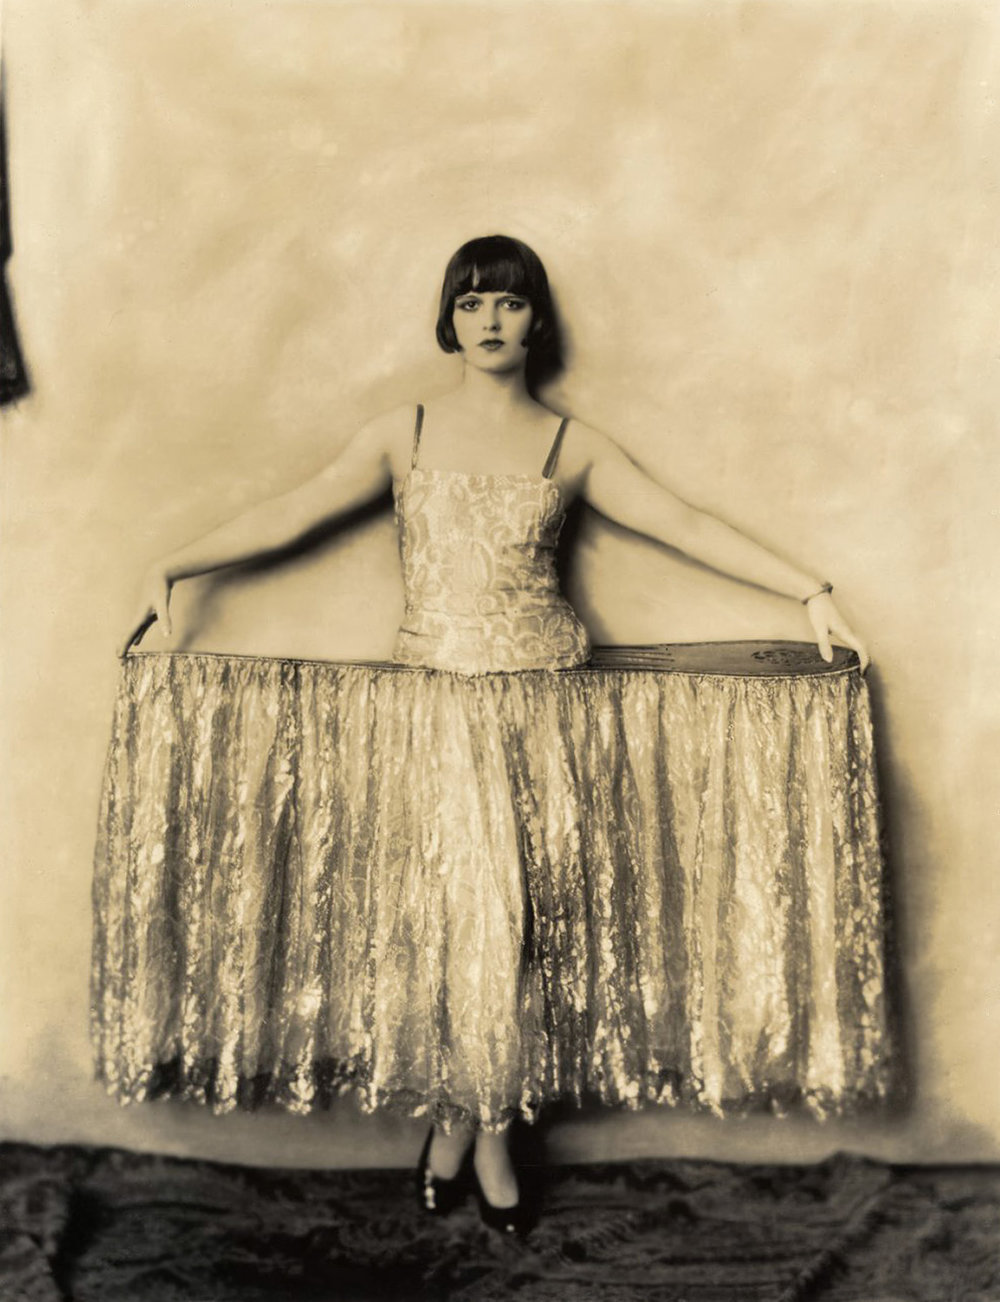 Louise Brooks photographed for  George White's Scandals   in 1924